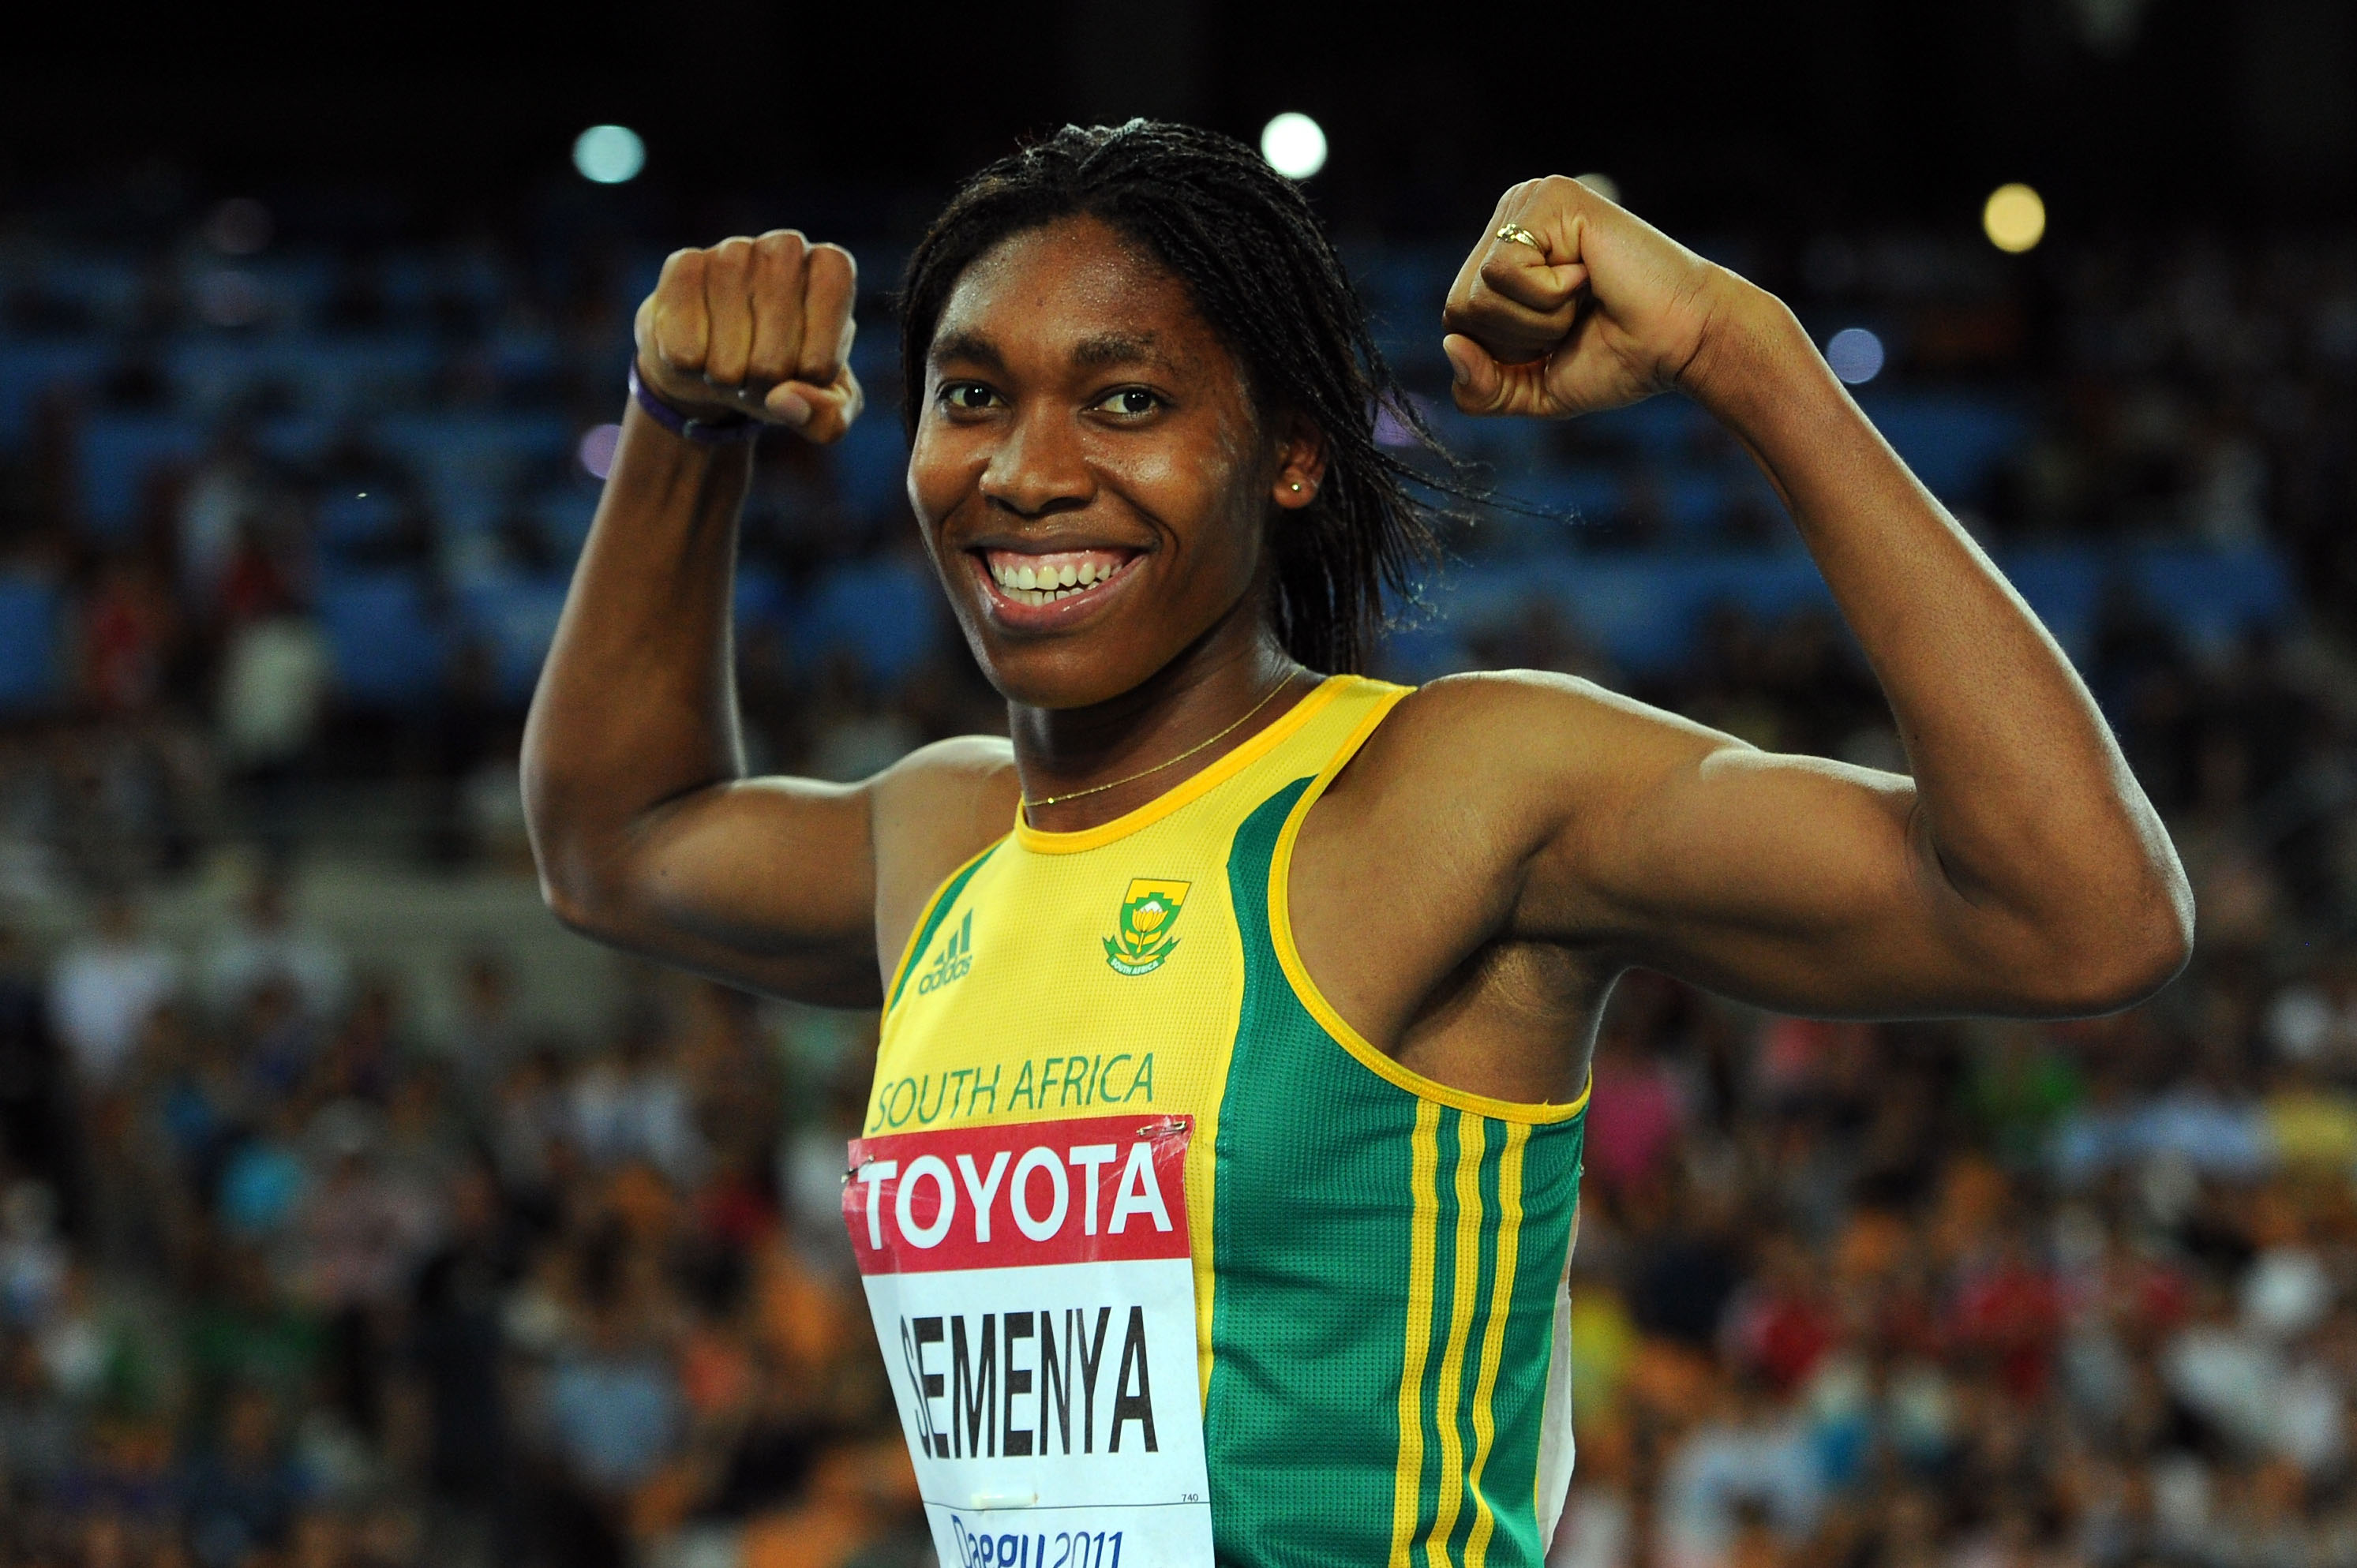 Semenya will race in the women's 800m and is expected to win